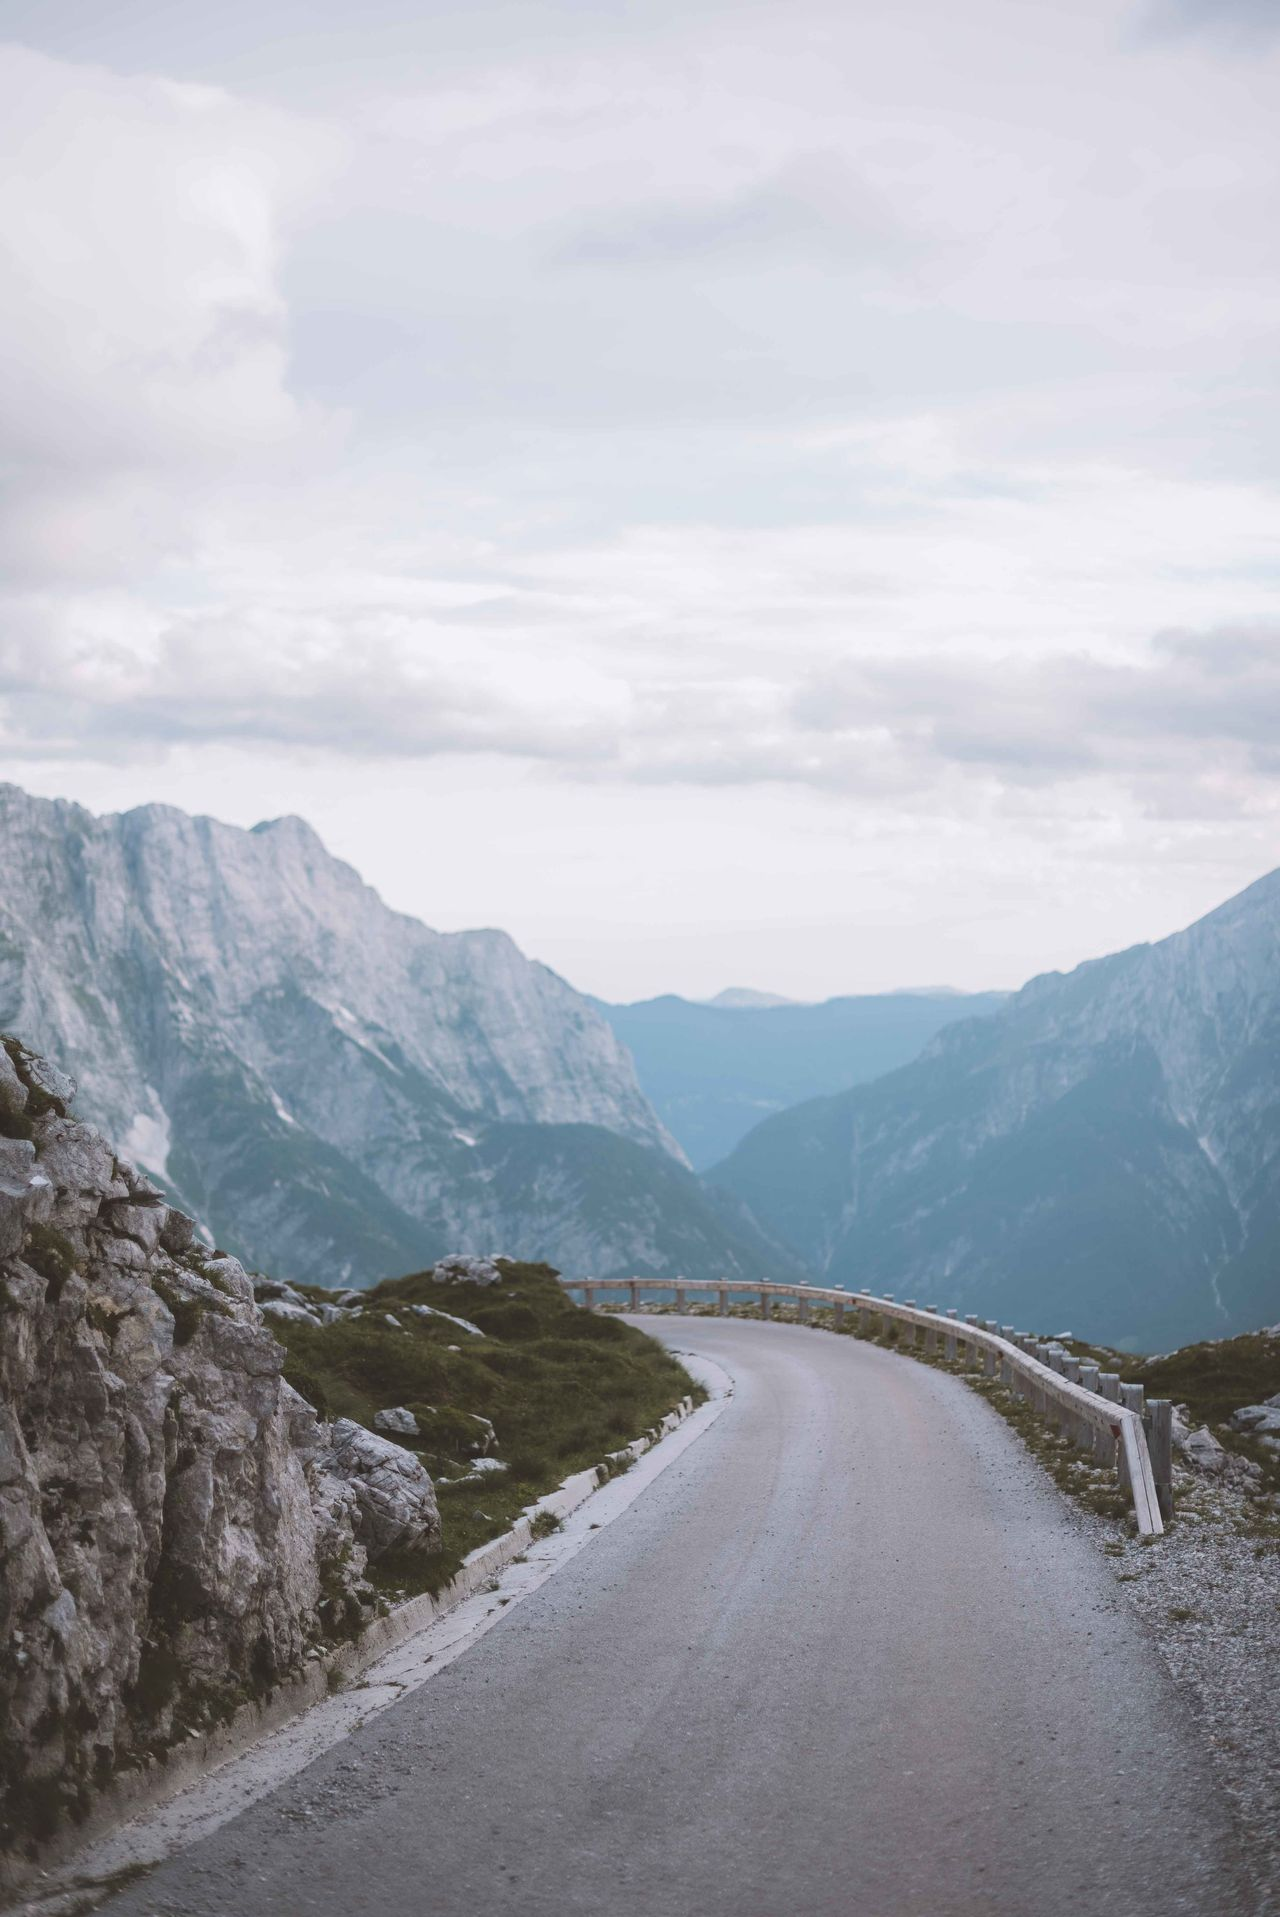 Beauty In Nature Day Landscape Mountain Mountain Range Mountain Road Nature No People Outdoors Road Scenics Sky Winding Road